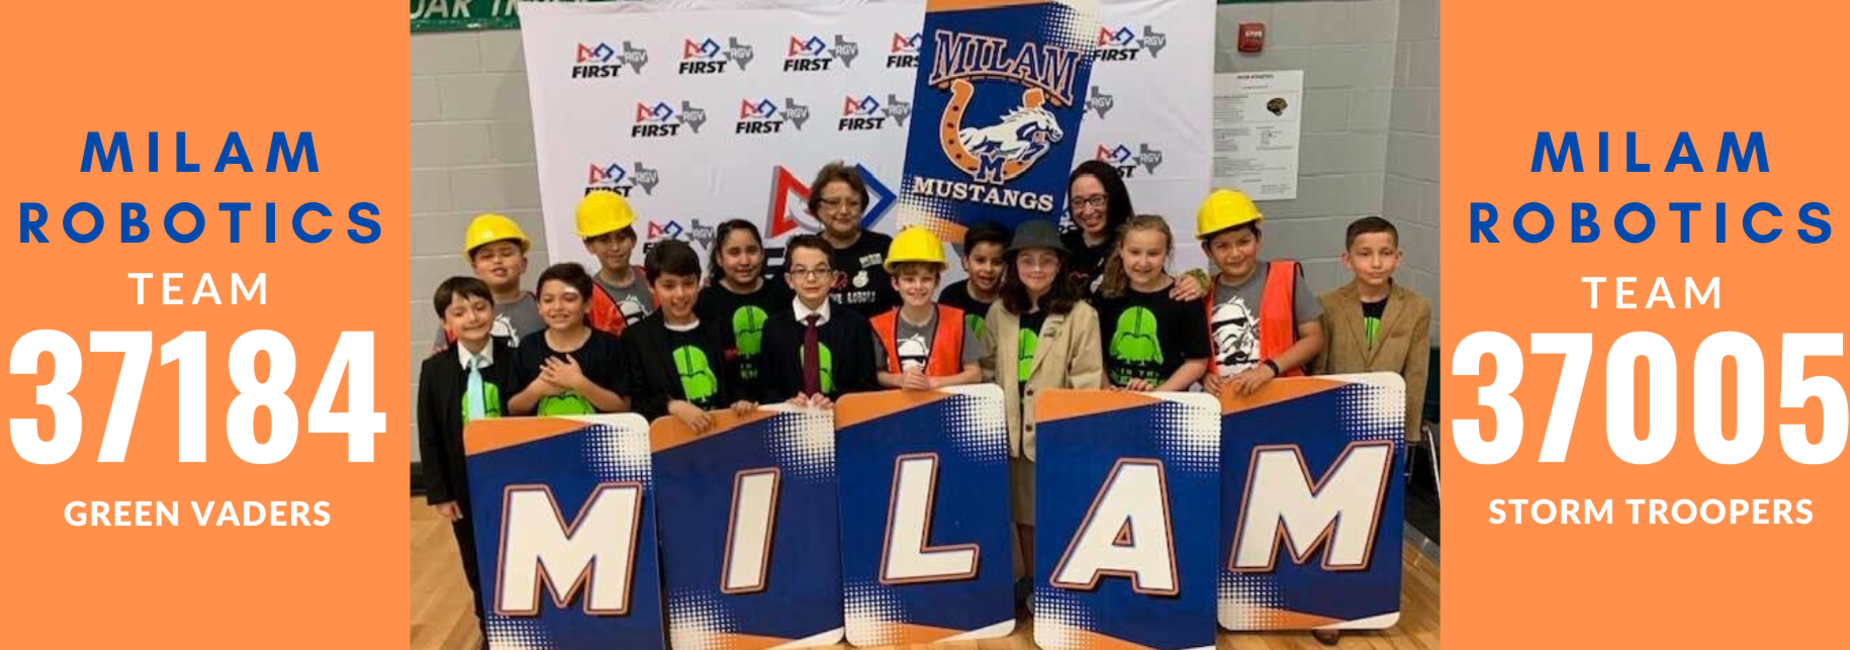 Milam Robotics Teams